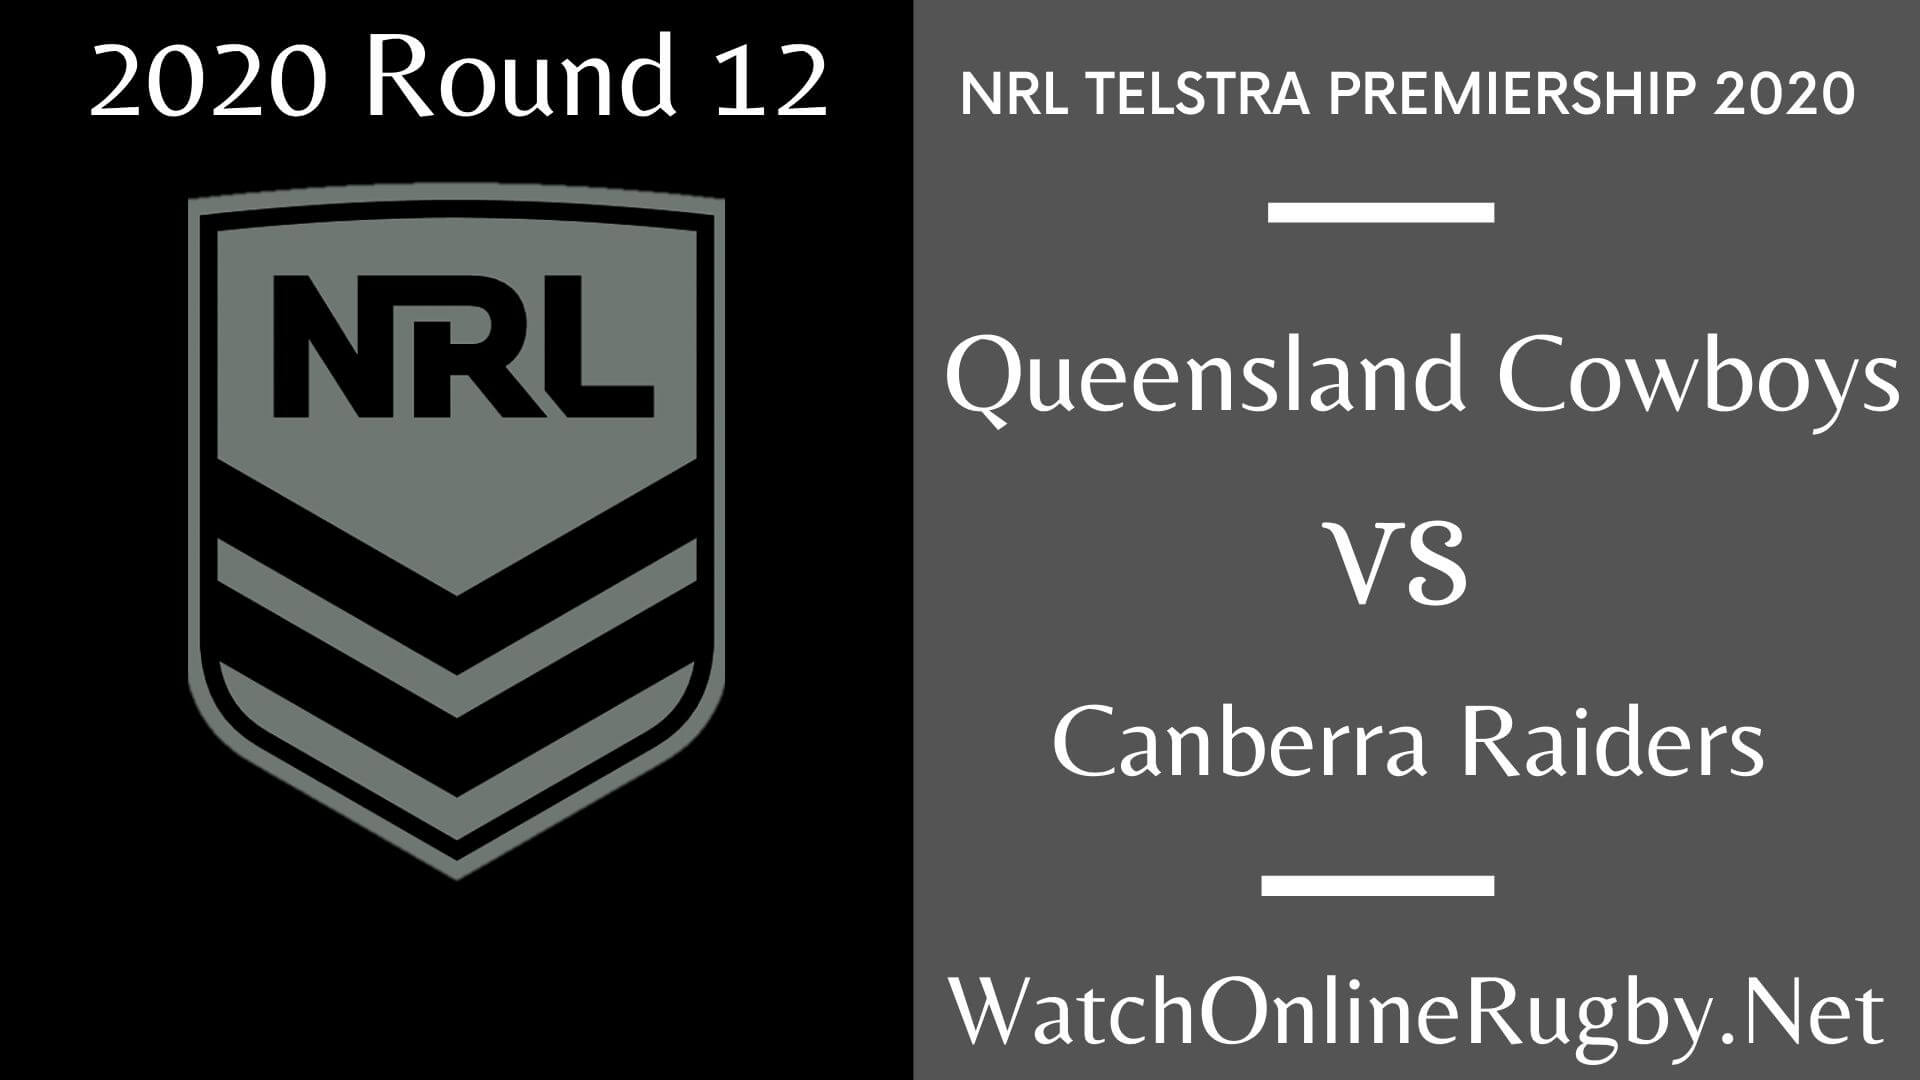 Cowboys Vs Raiders Highlights 2020 Round 12 Nrl Rugby